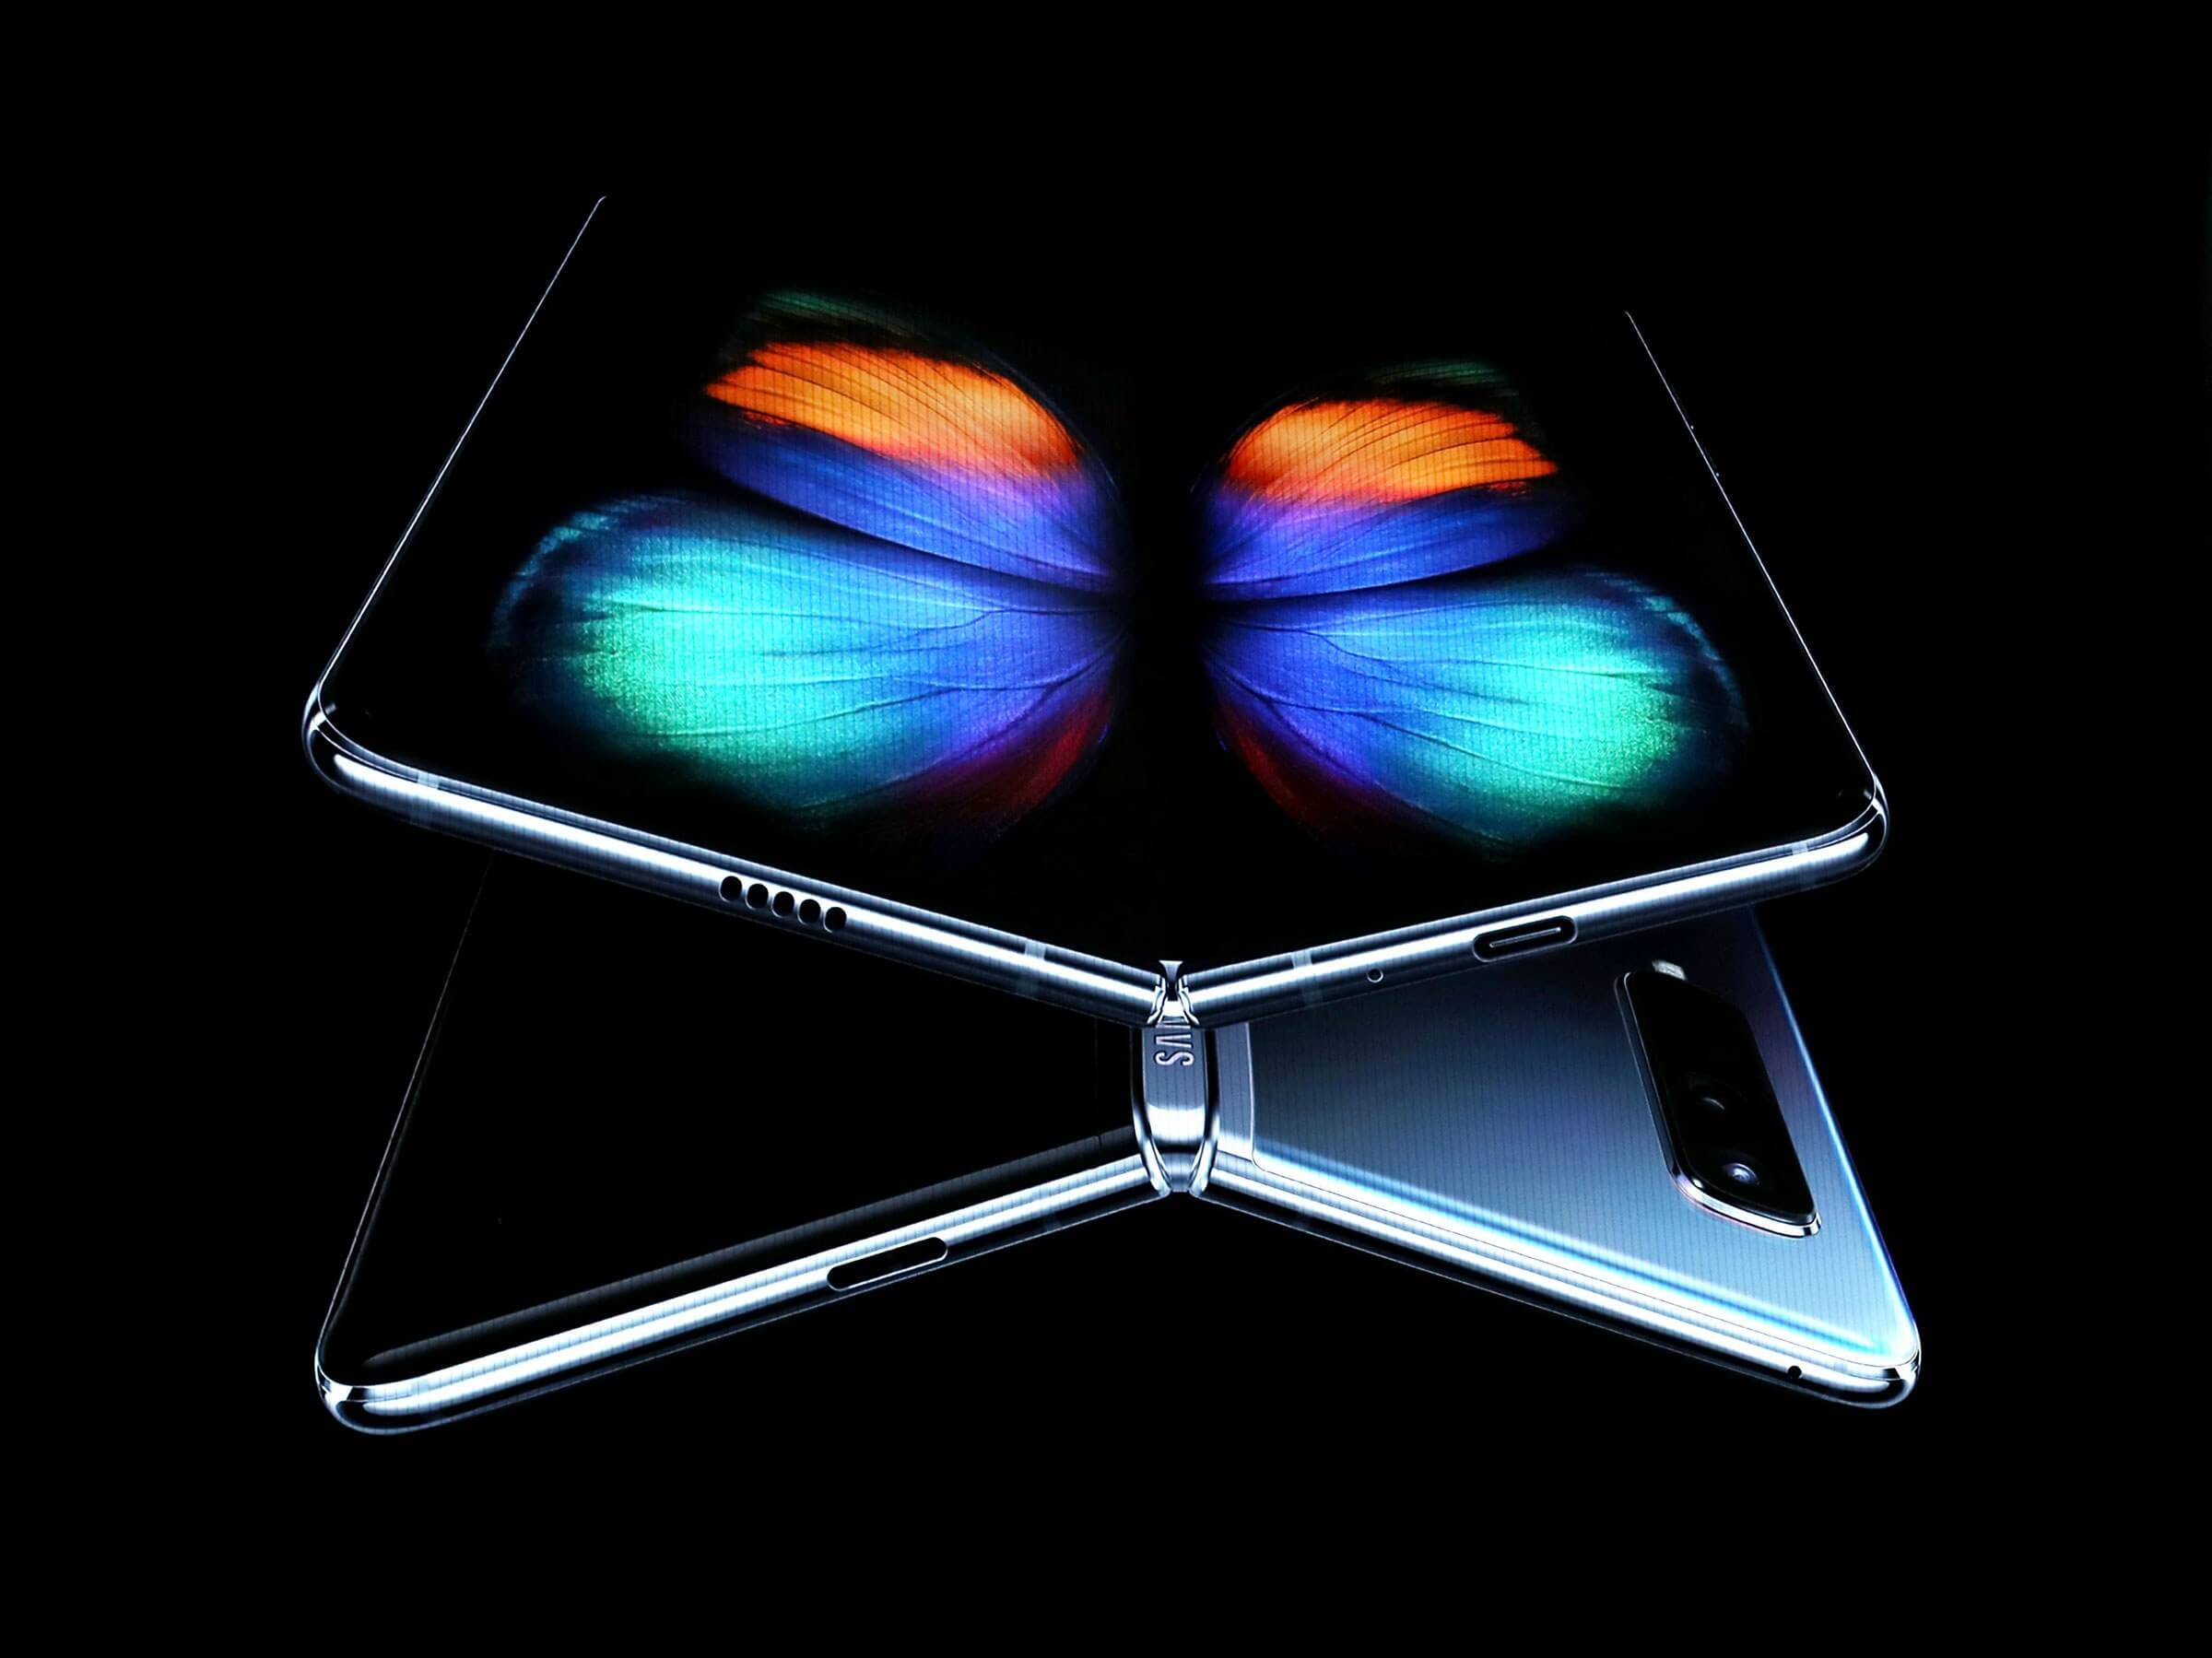 Samsung Display VP says Galaxy Fold is 'ready to hit the market'